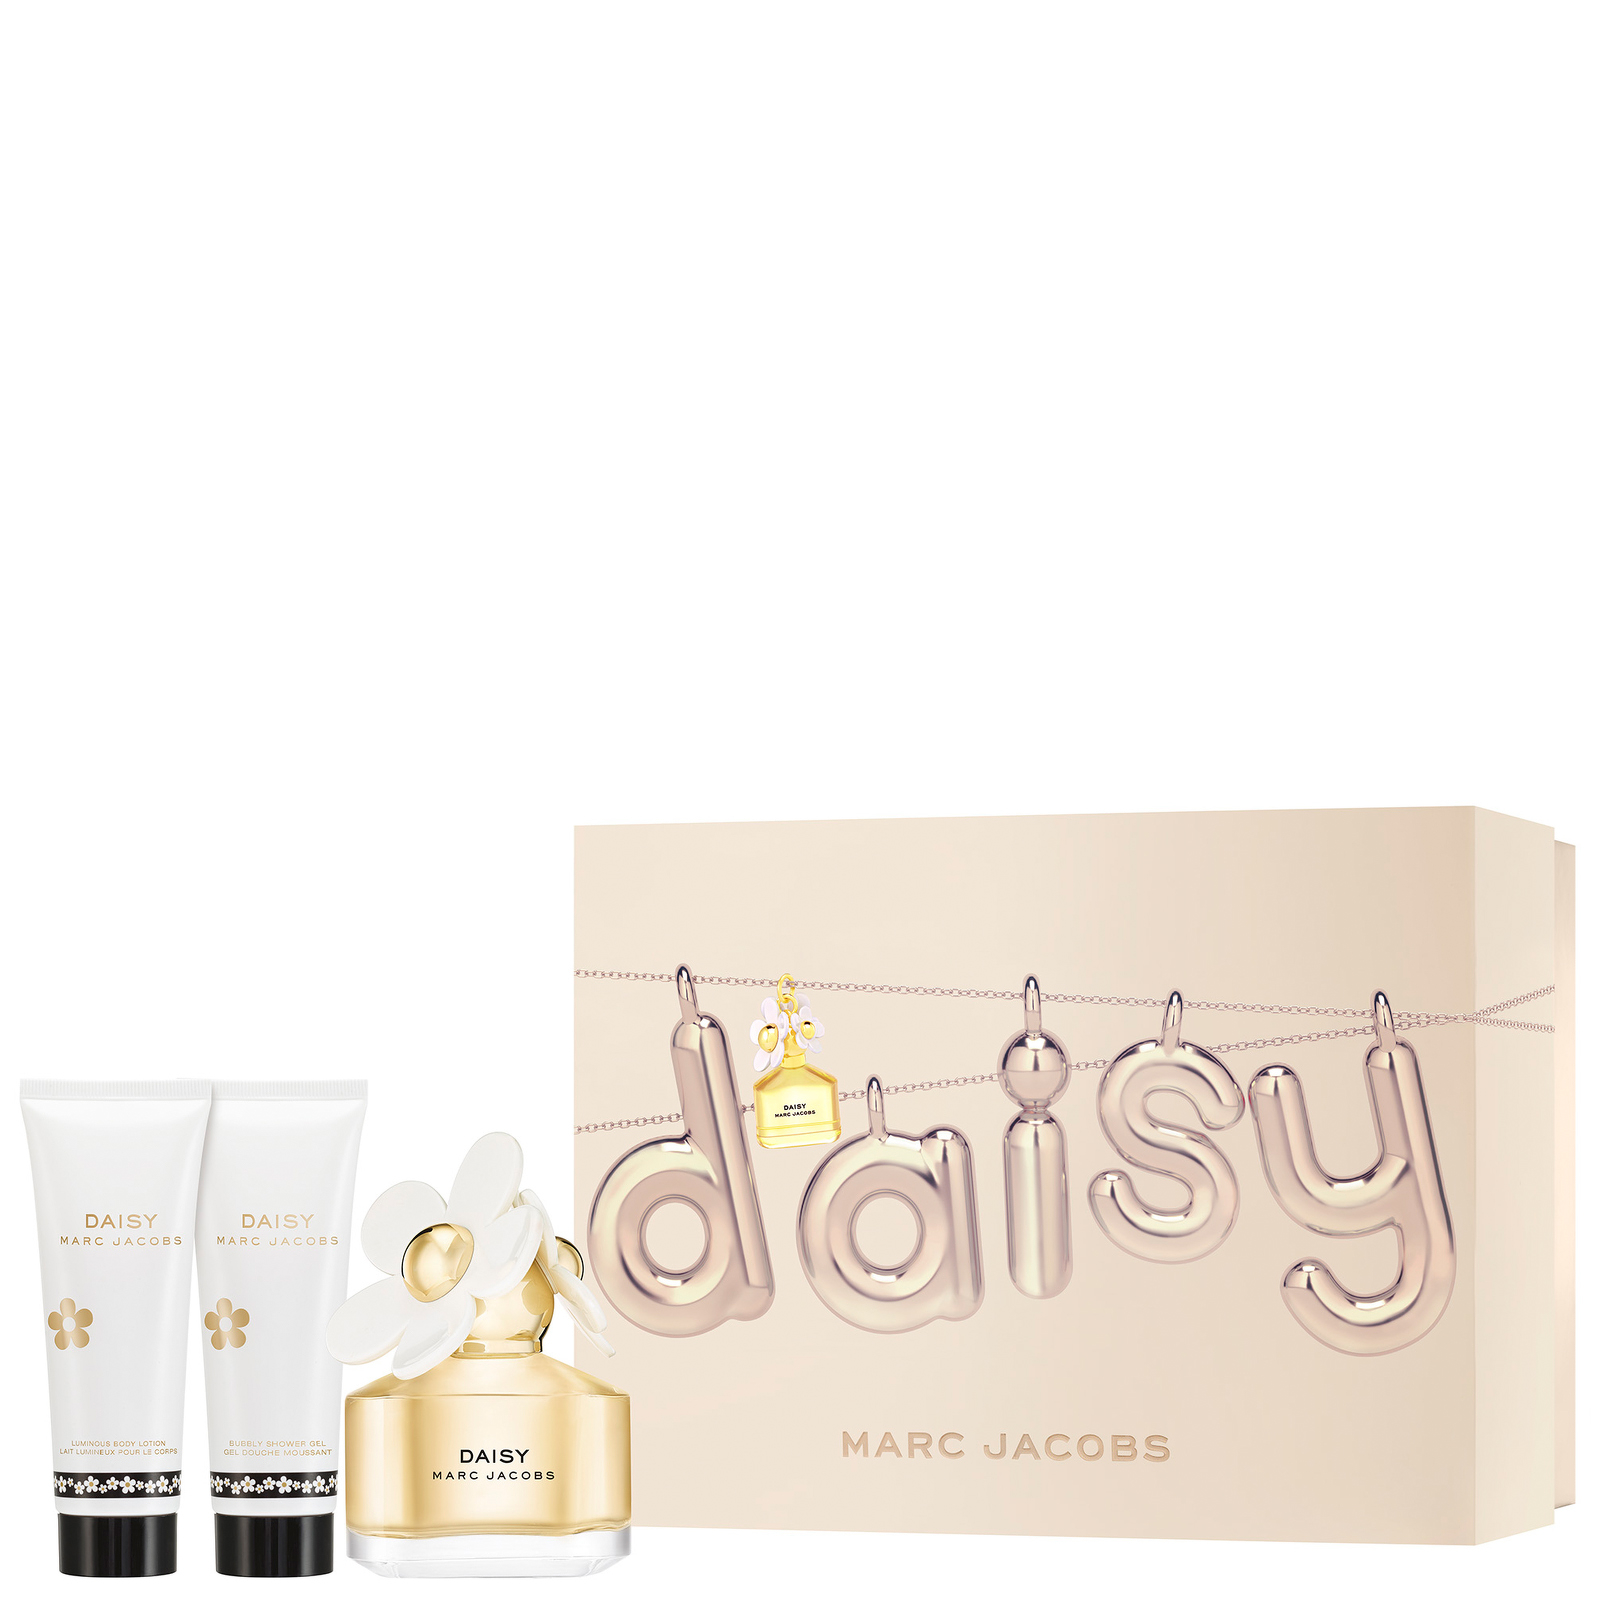 Marc Jacobs Daisy Eau de Toilette Spray 50ml Gift Set